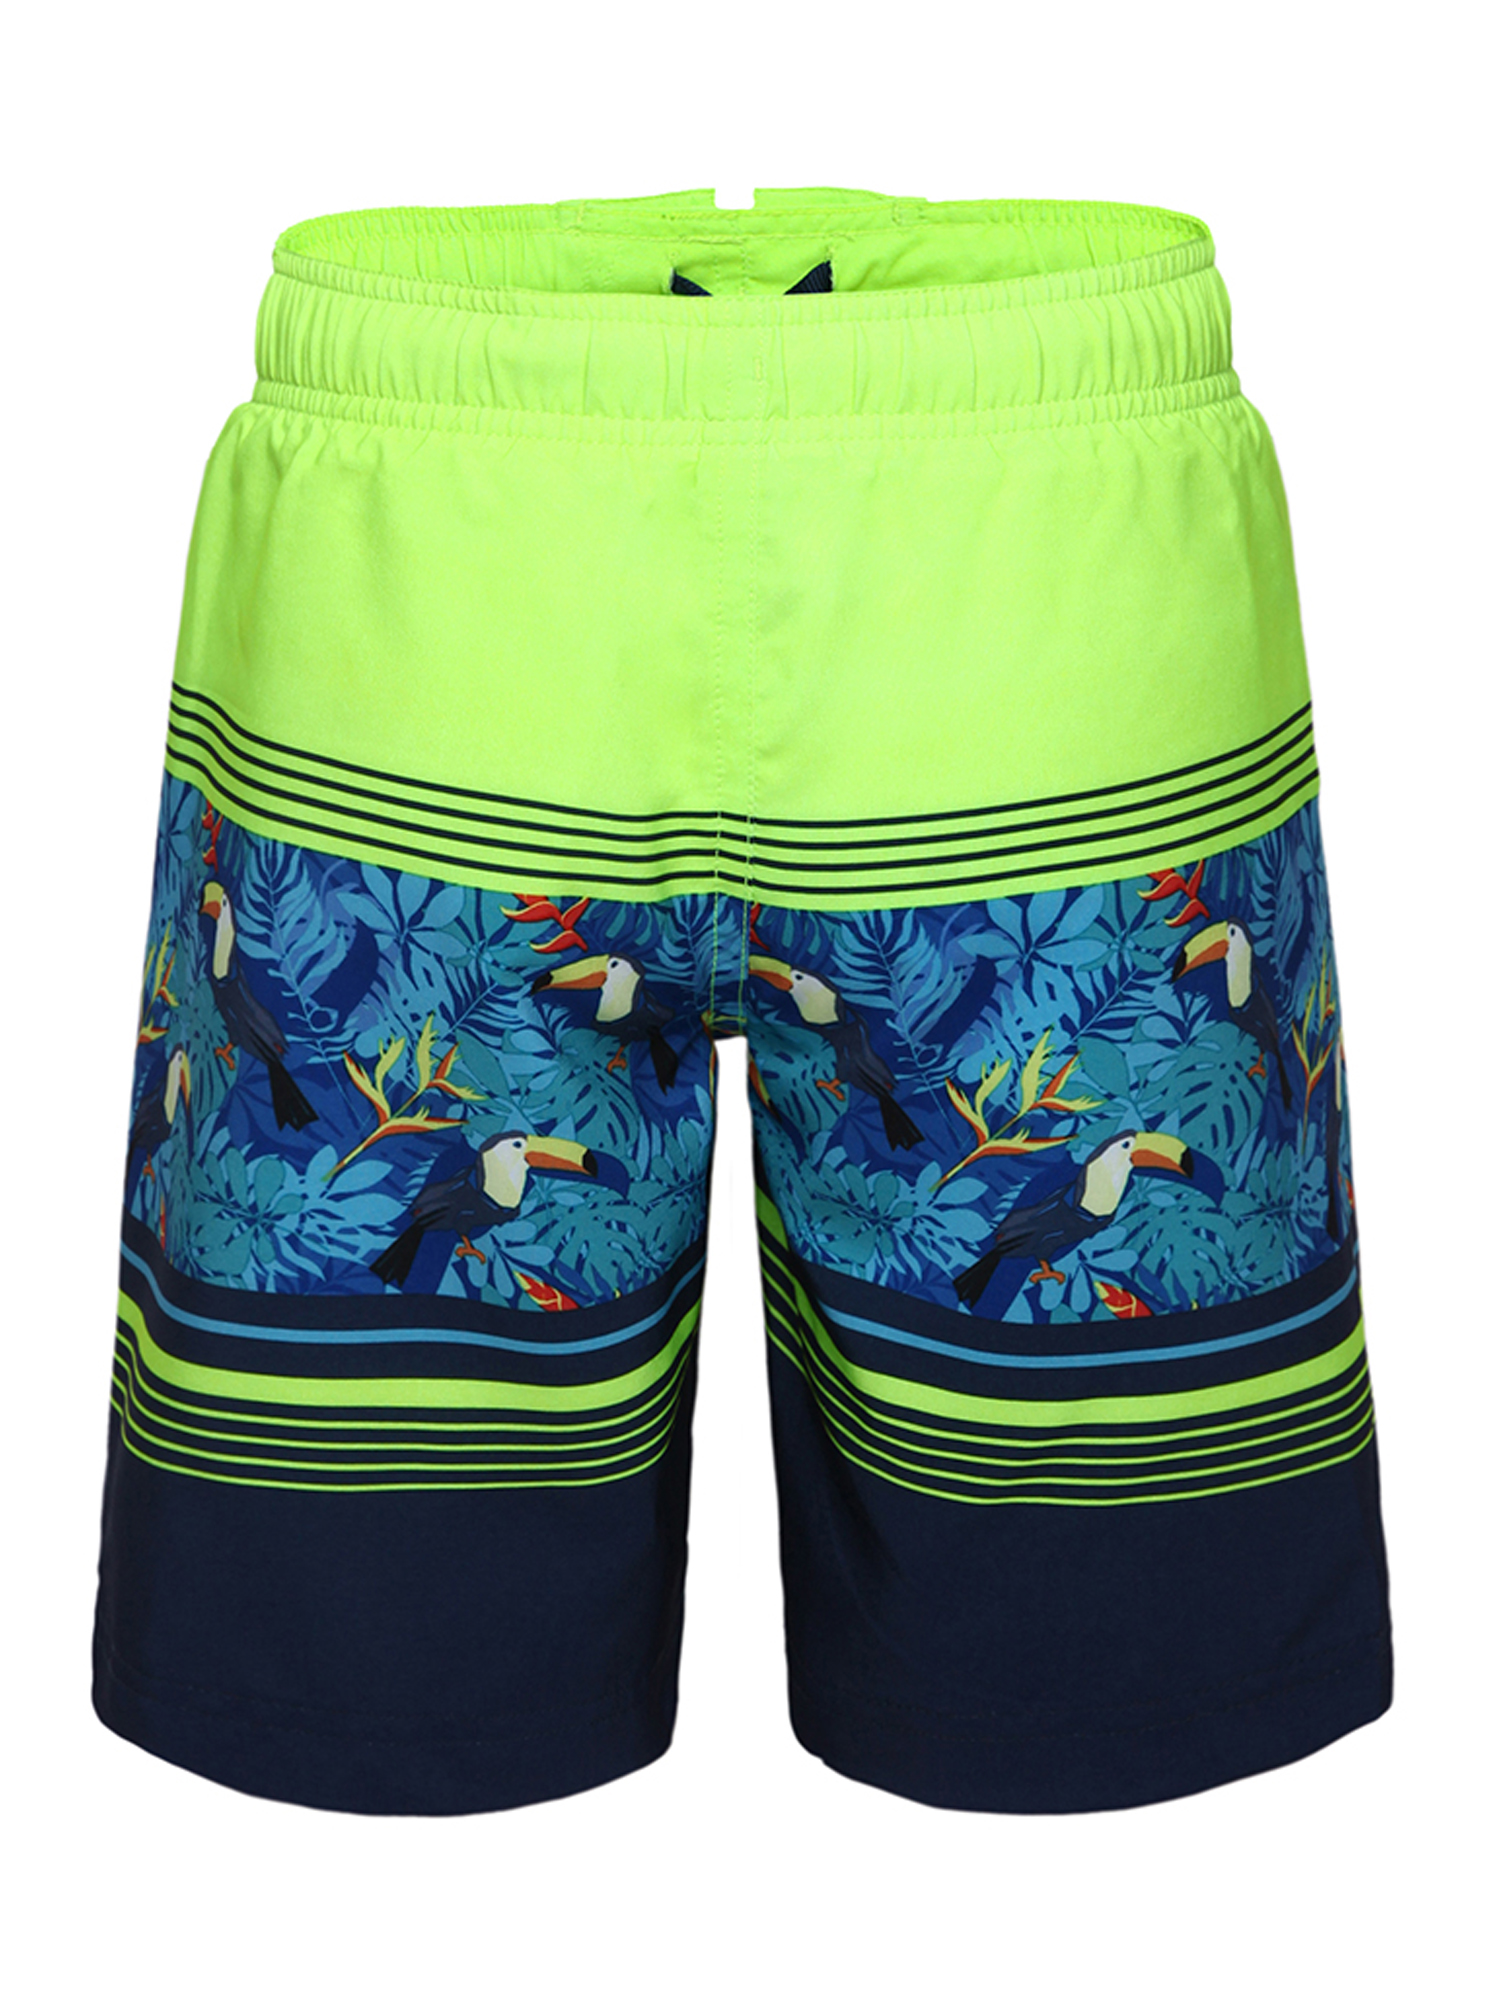 Mens Swim Trunks Blue Pattern with Sketches Summer Elements Quick Dry Beach Board Shorts with Mesh Lining